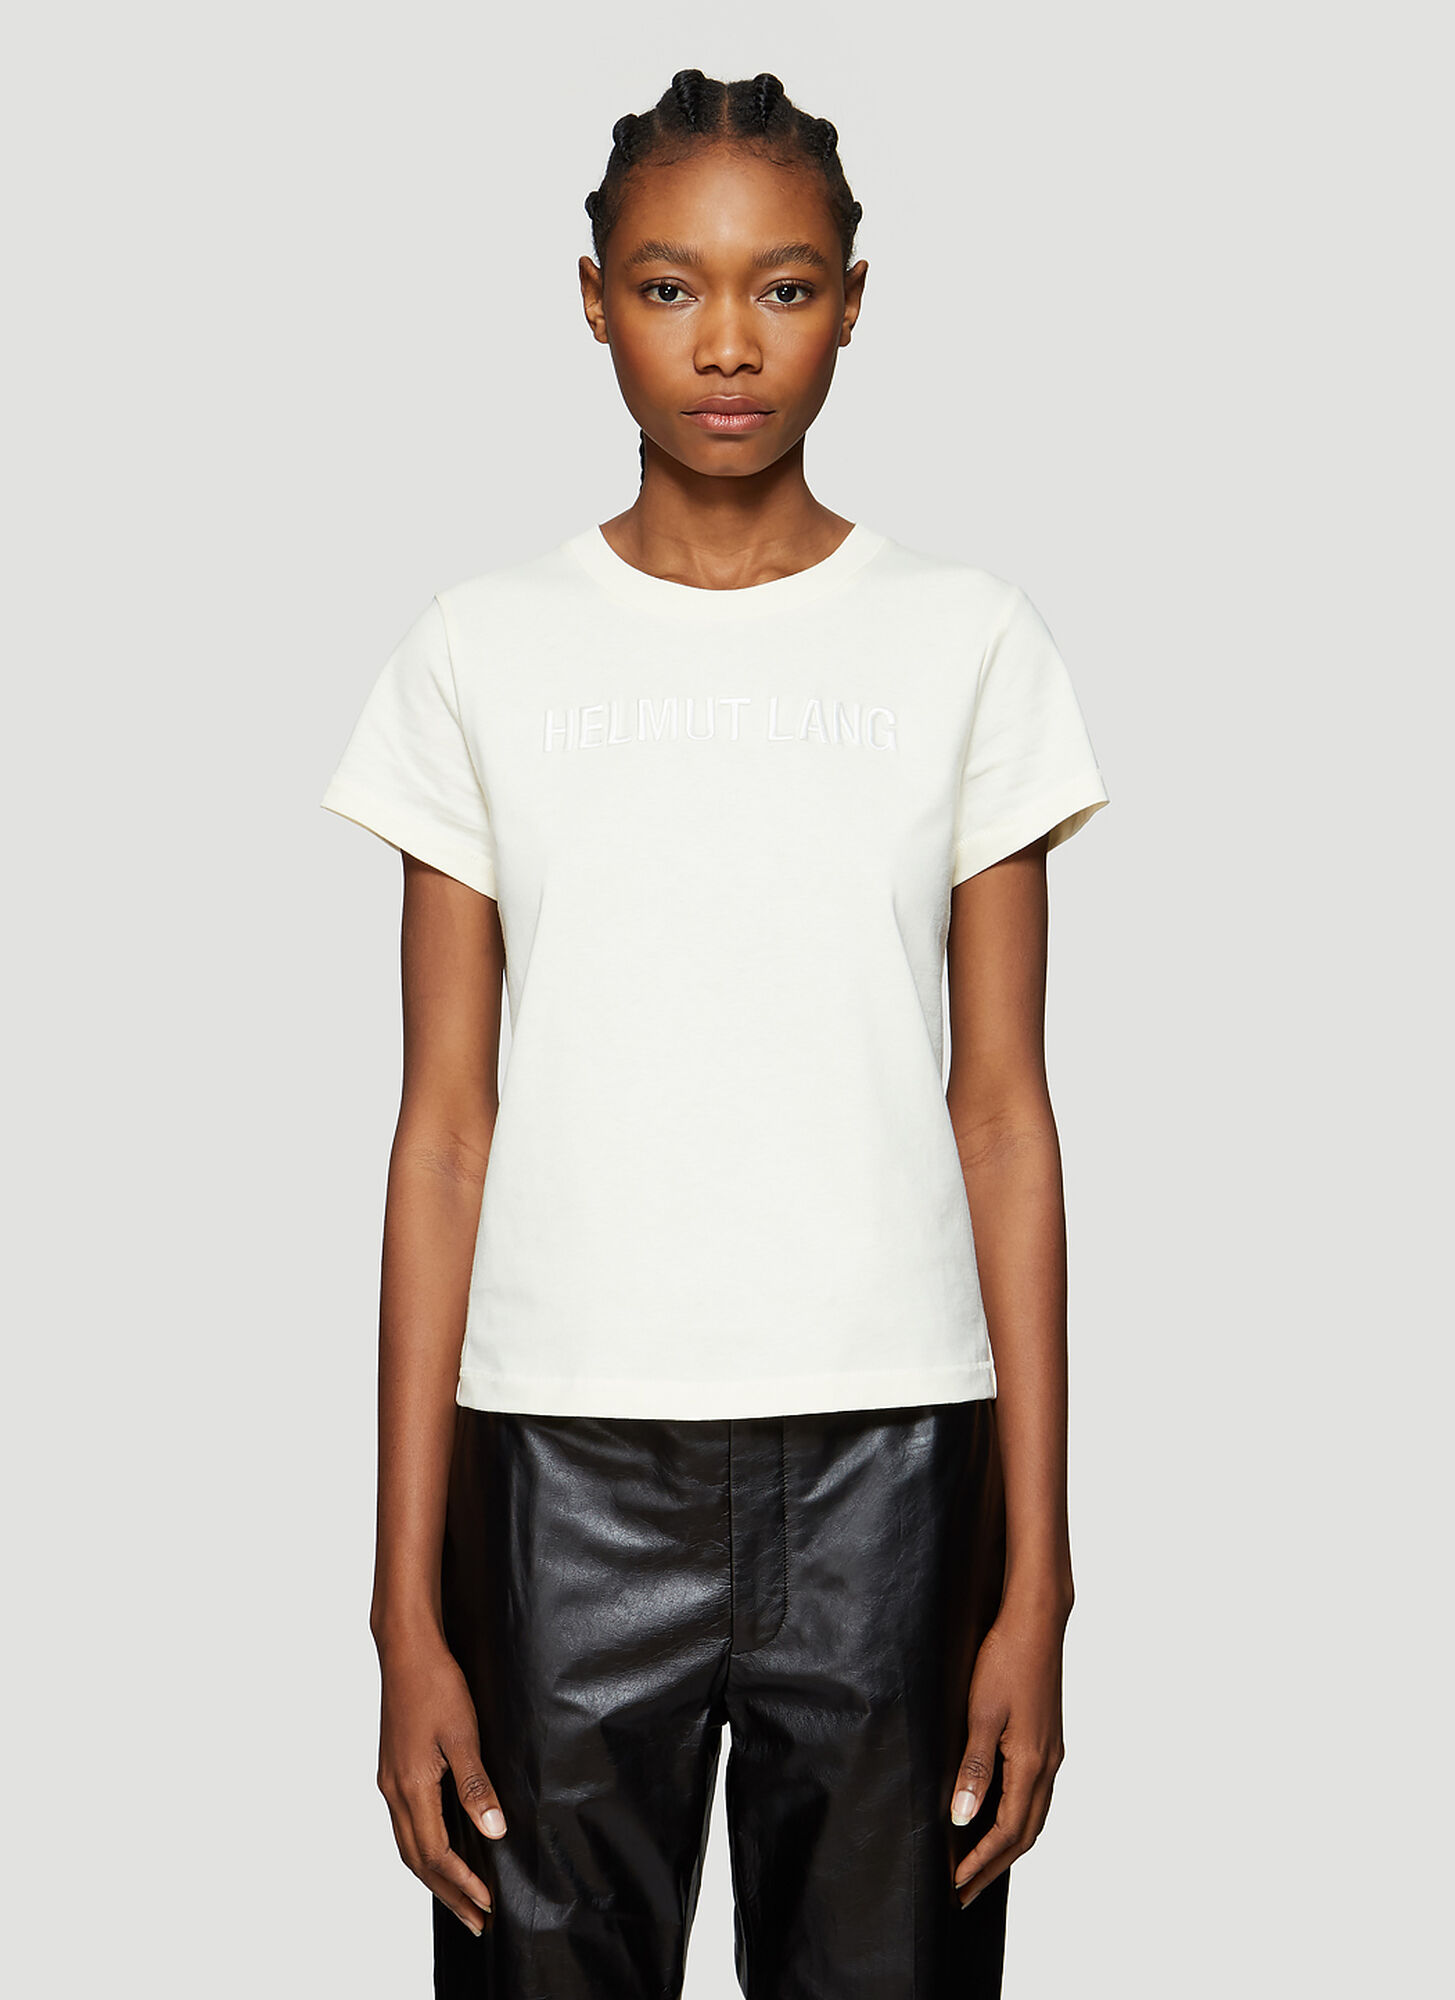 Helmut Lang Baby Logo Embroidered T-Shirt in Cream